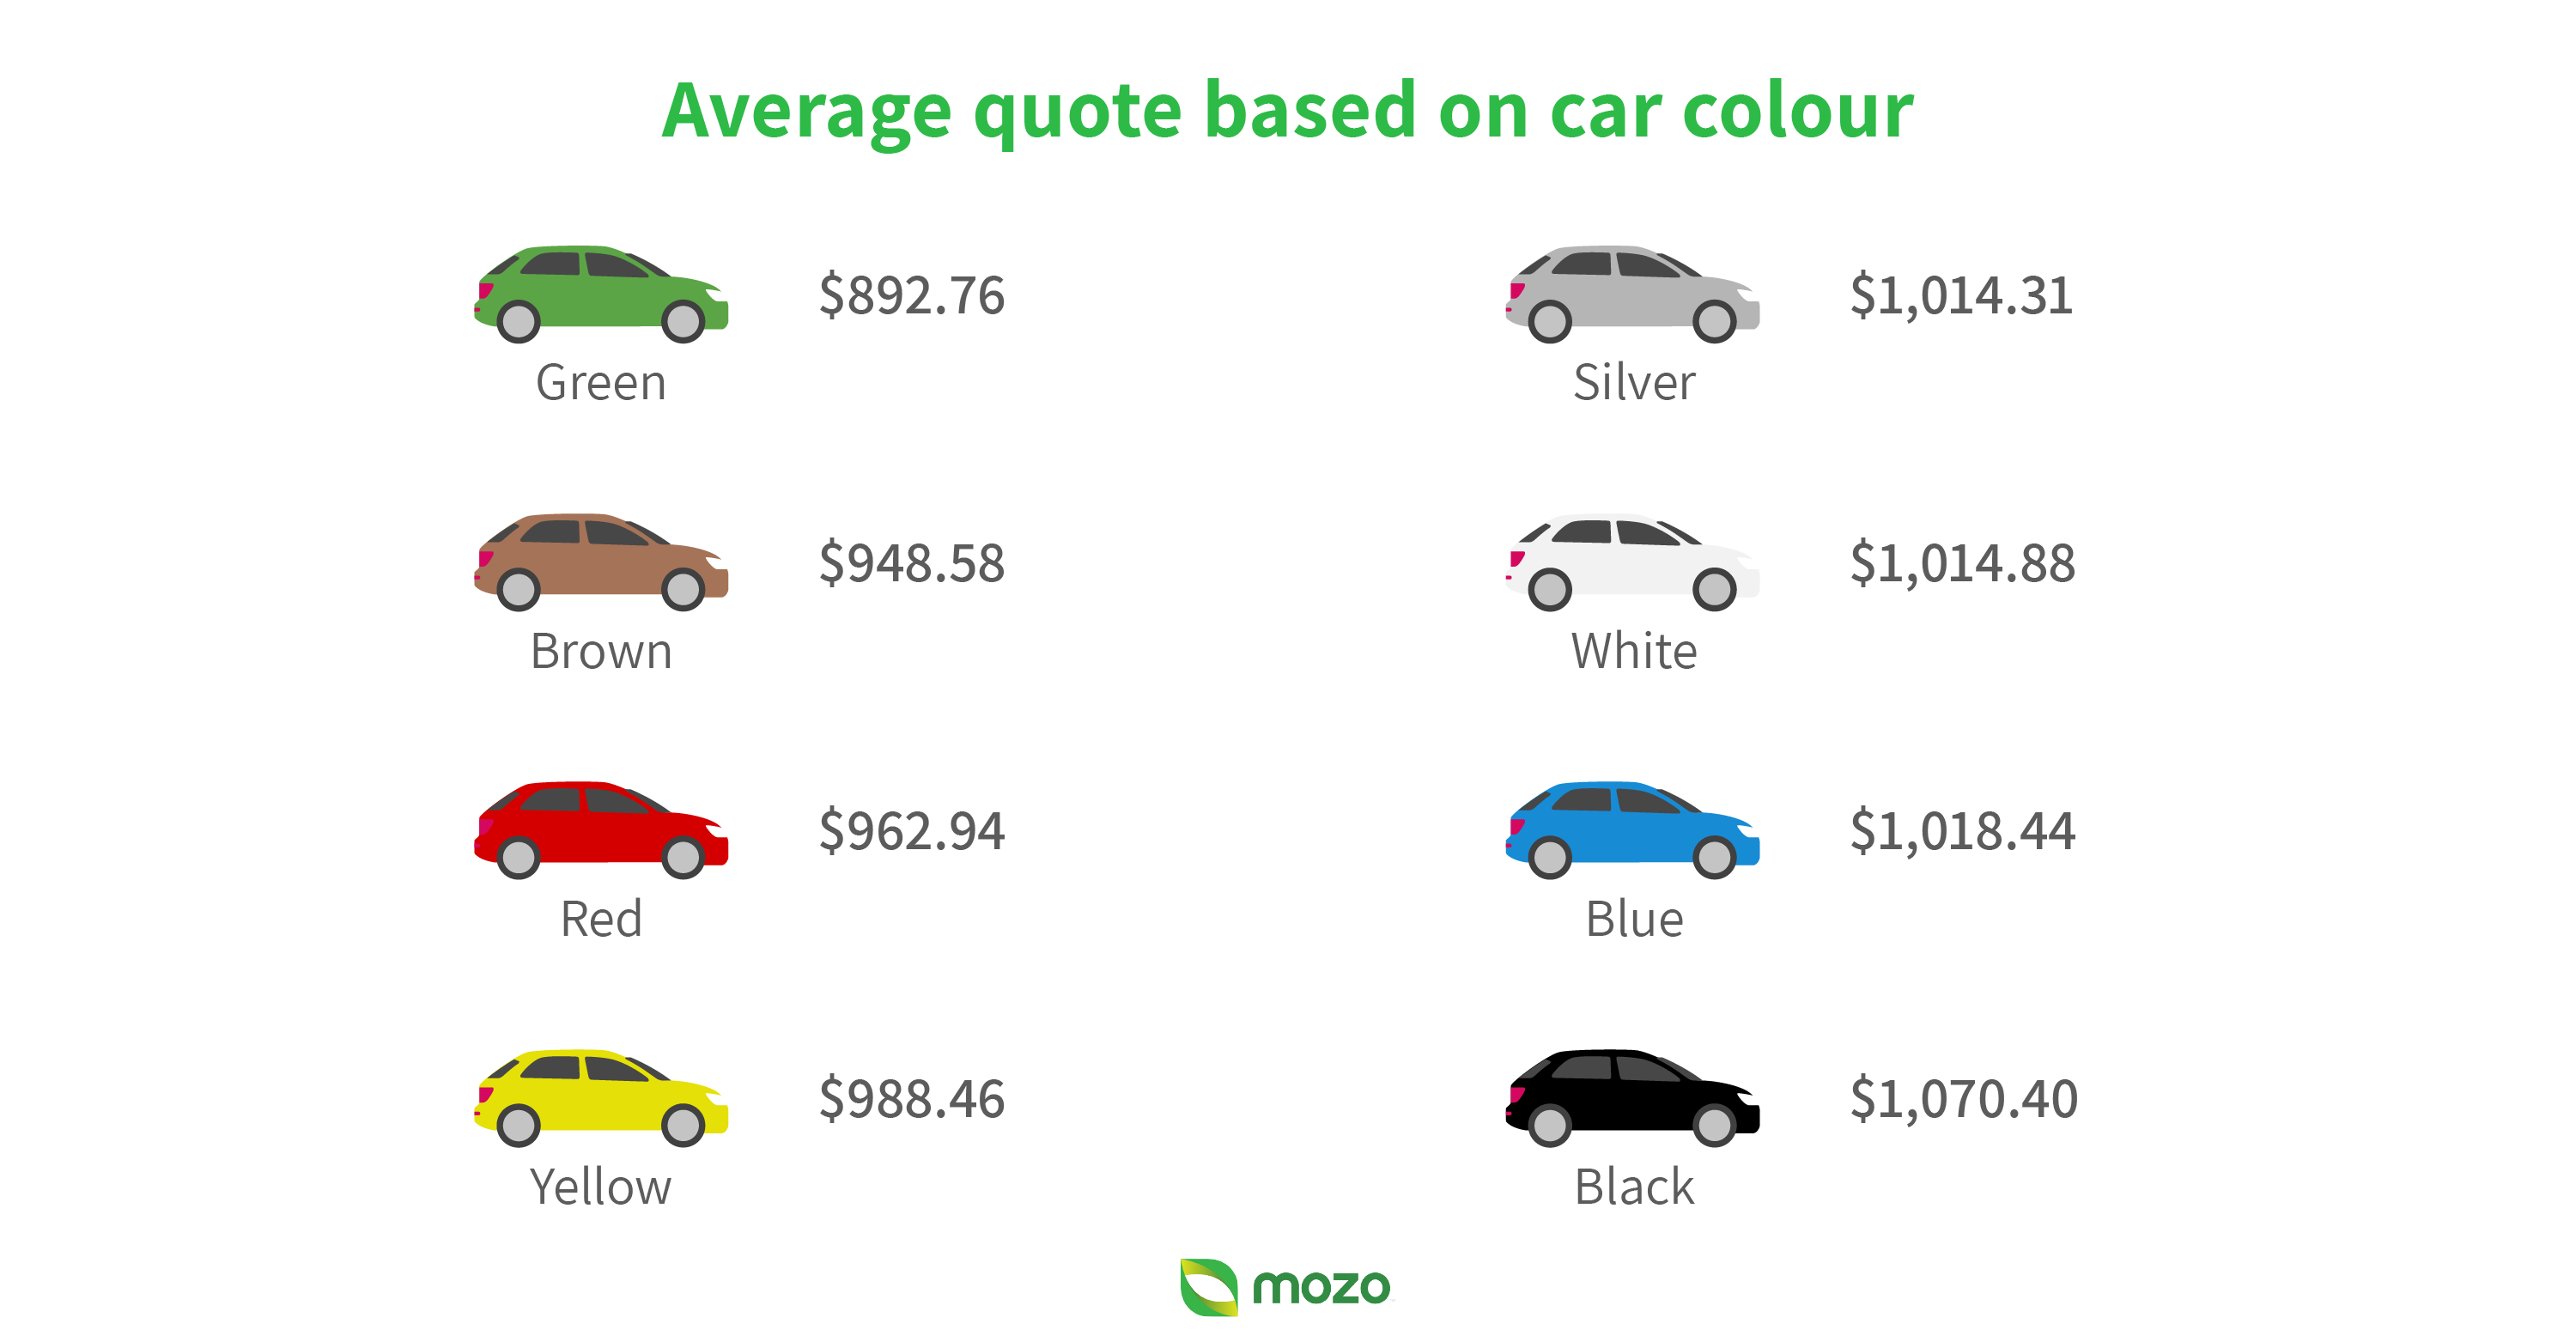 Graphic showing the average quote based on car colour.